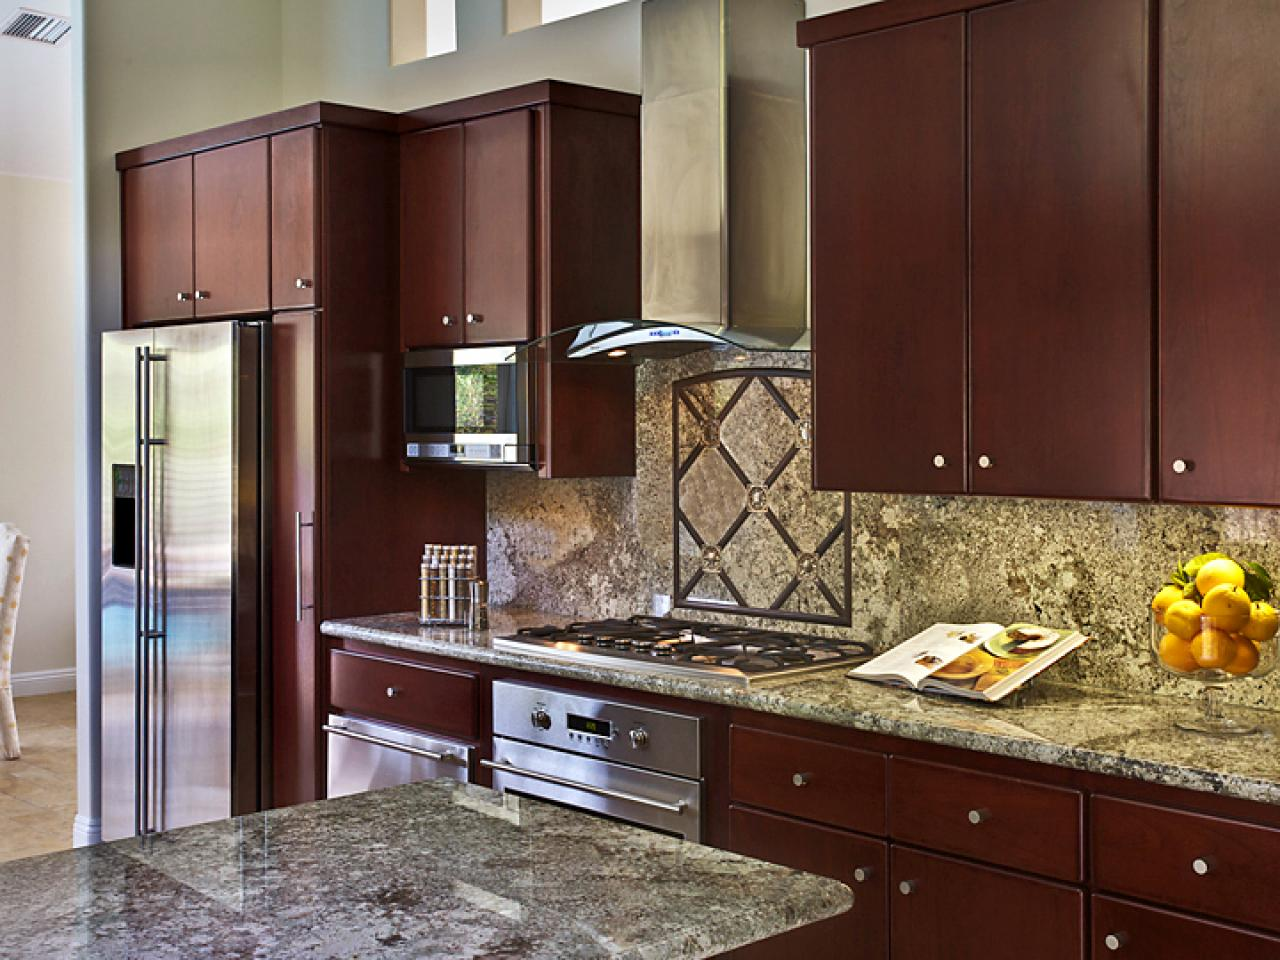 Stock kitchen cabinets pictures ideas tips from hgtv for Individual kitchen units